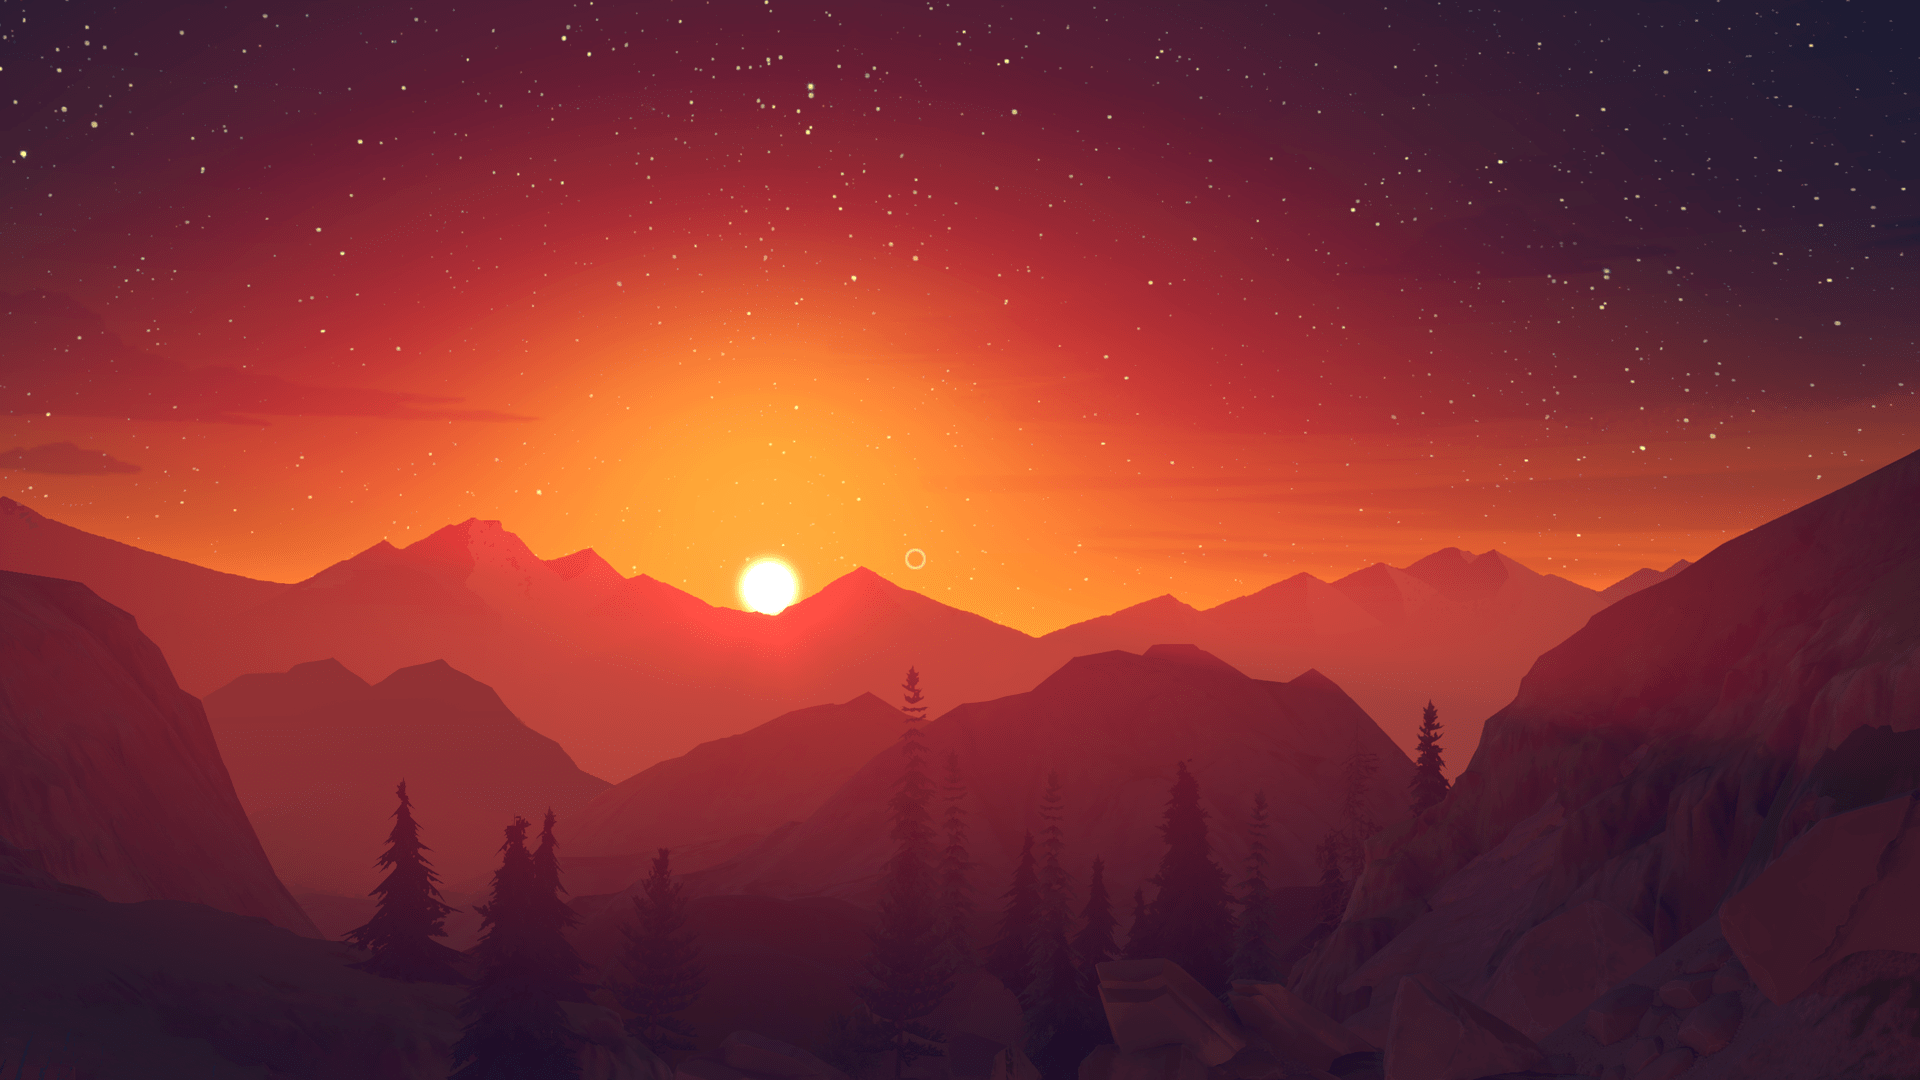 Firewatch Full hd wallpapers